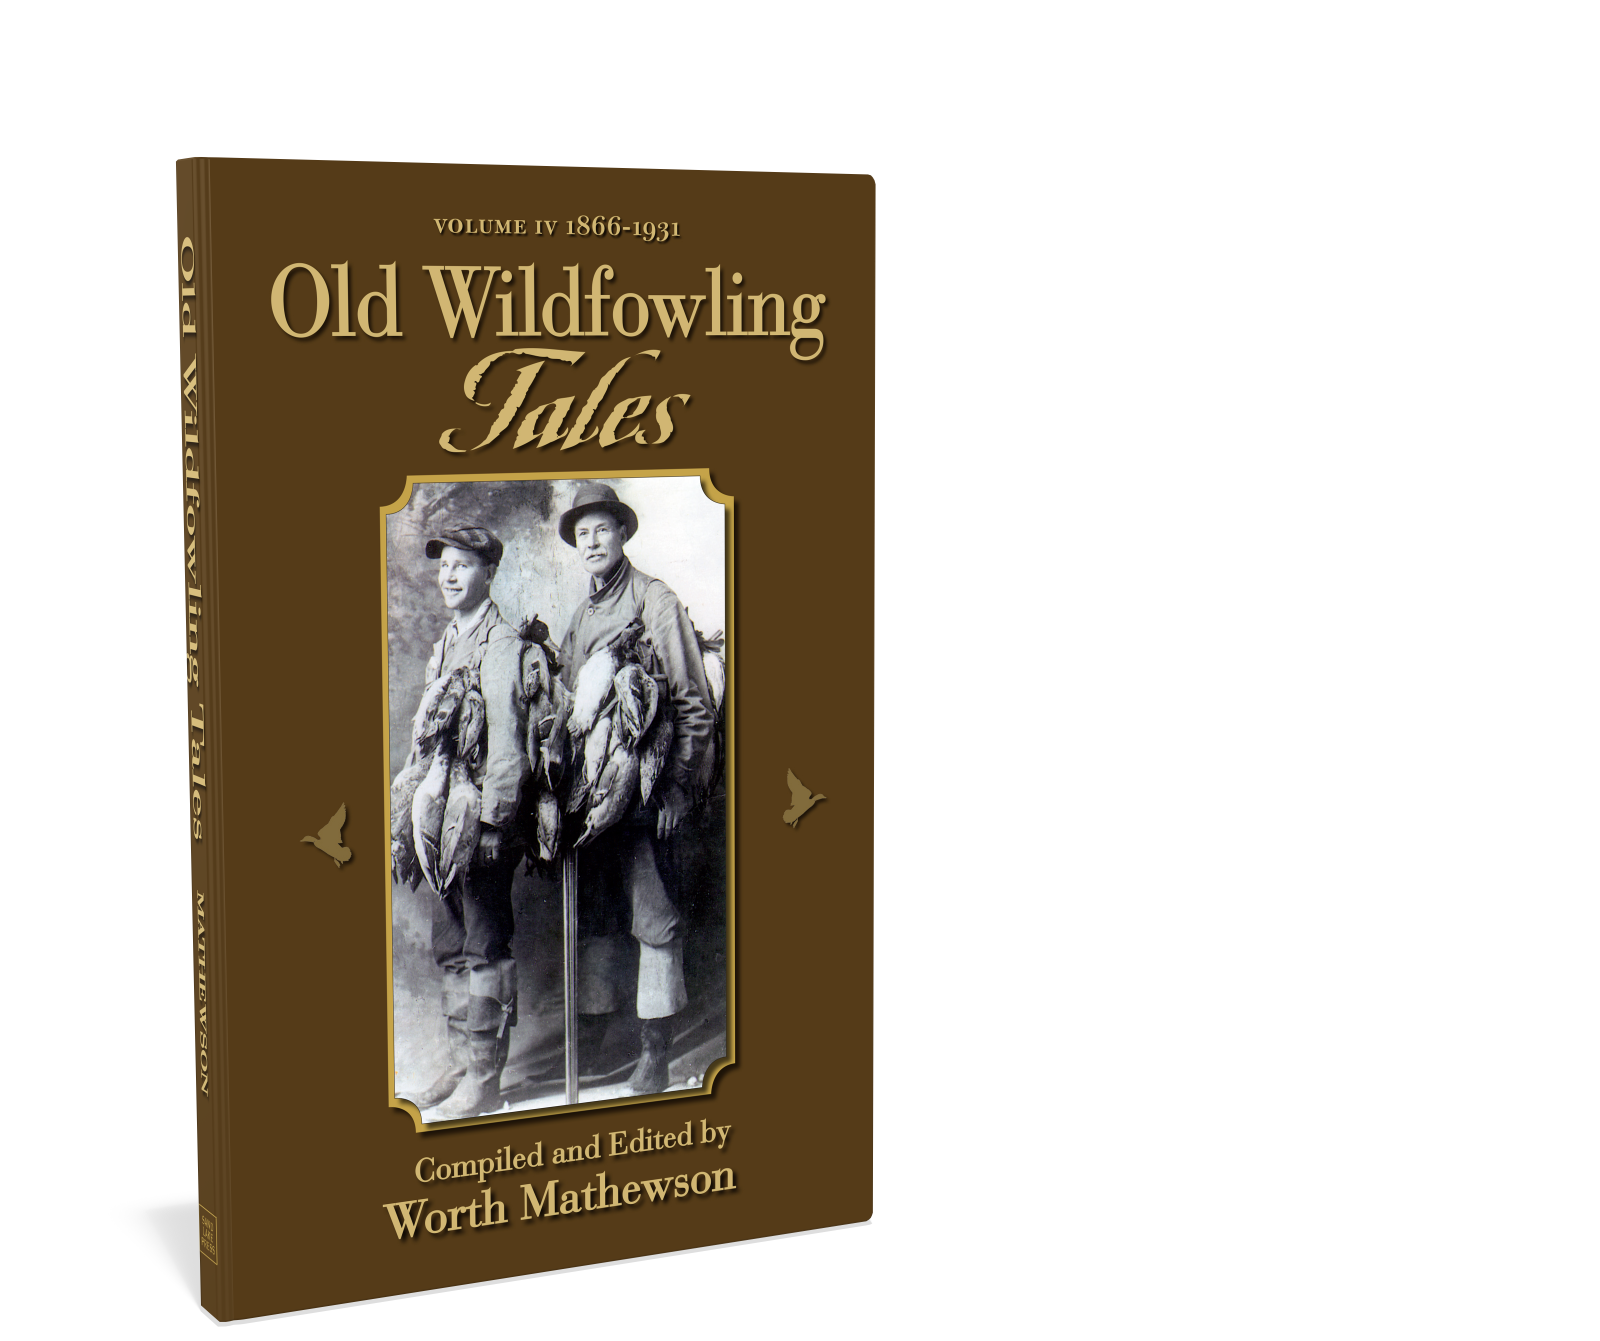 Old Wildfowling Tales Volume IV